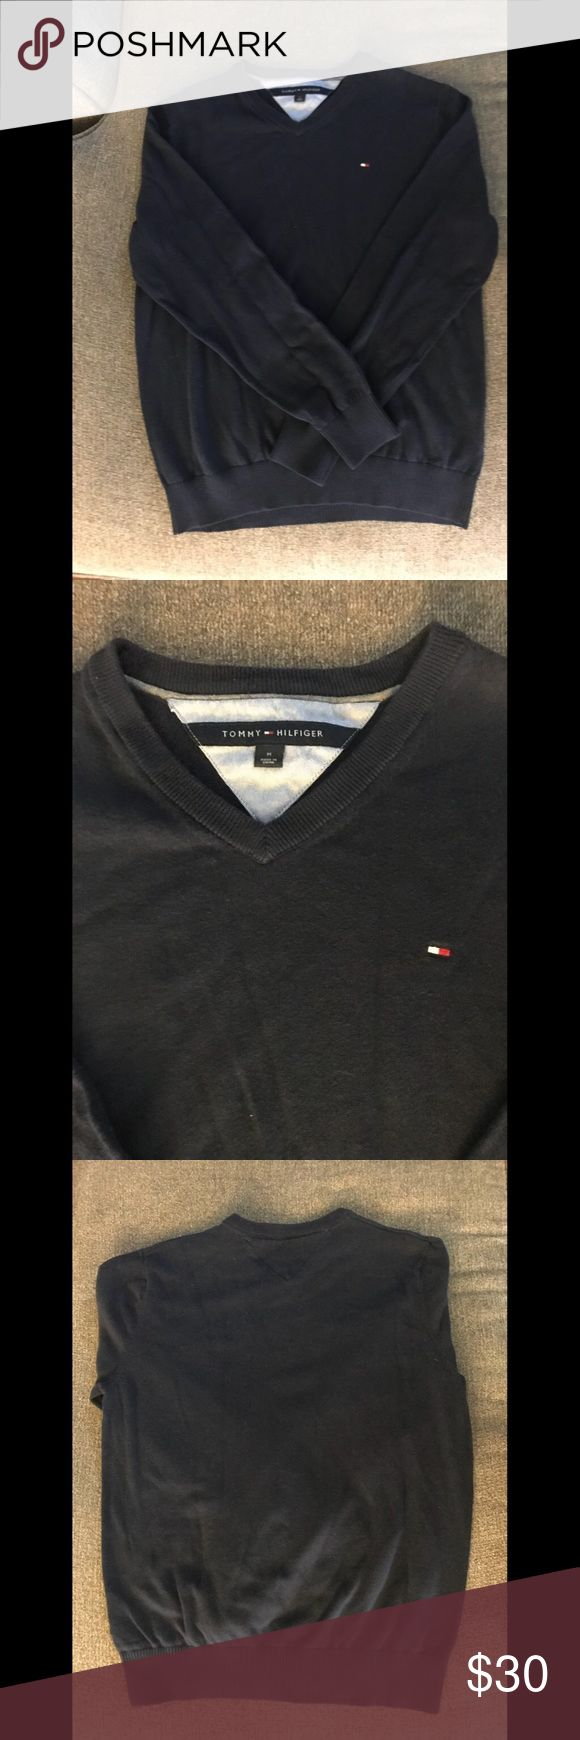 Tommy Hilfiger Blue Pullover Sweater Blue Tommy Hilfiger pullover sweater in great condition. It is 100% cotton and easily a staple in ones fall/winter closet. Can be worn with jeans, skirt, or work pants. Tommy Hilfiger Sweaters V-Necks